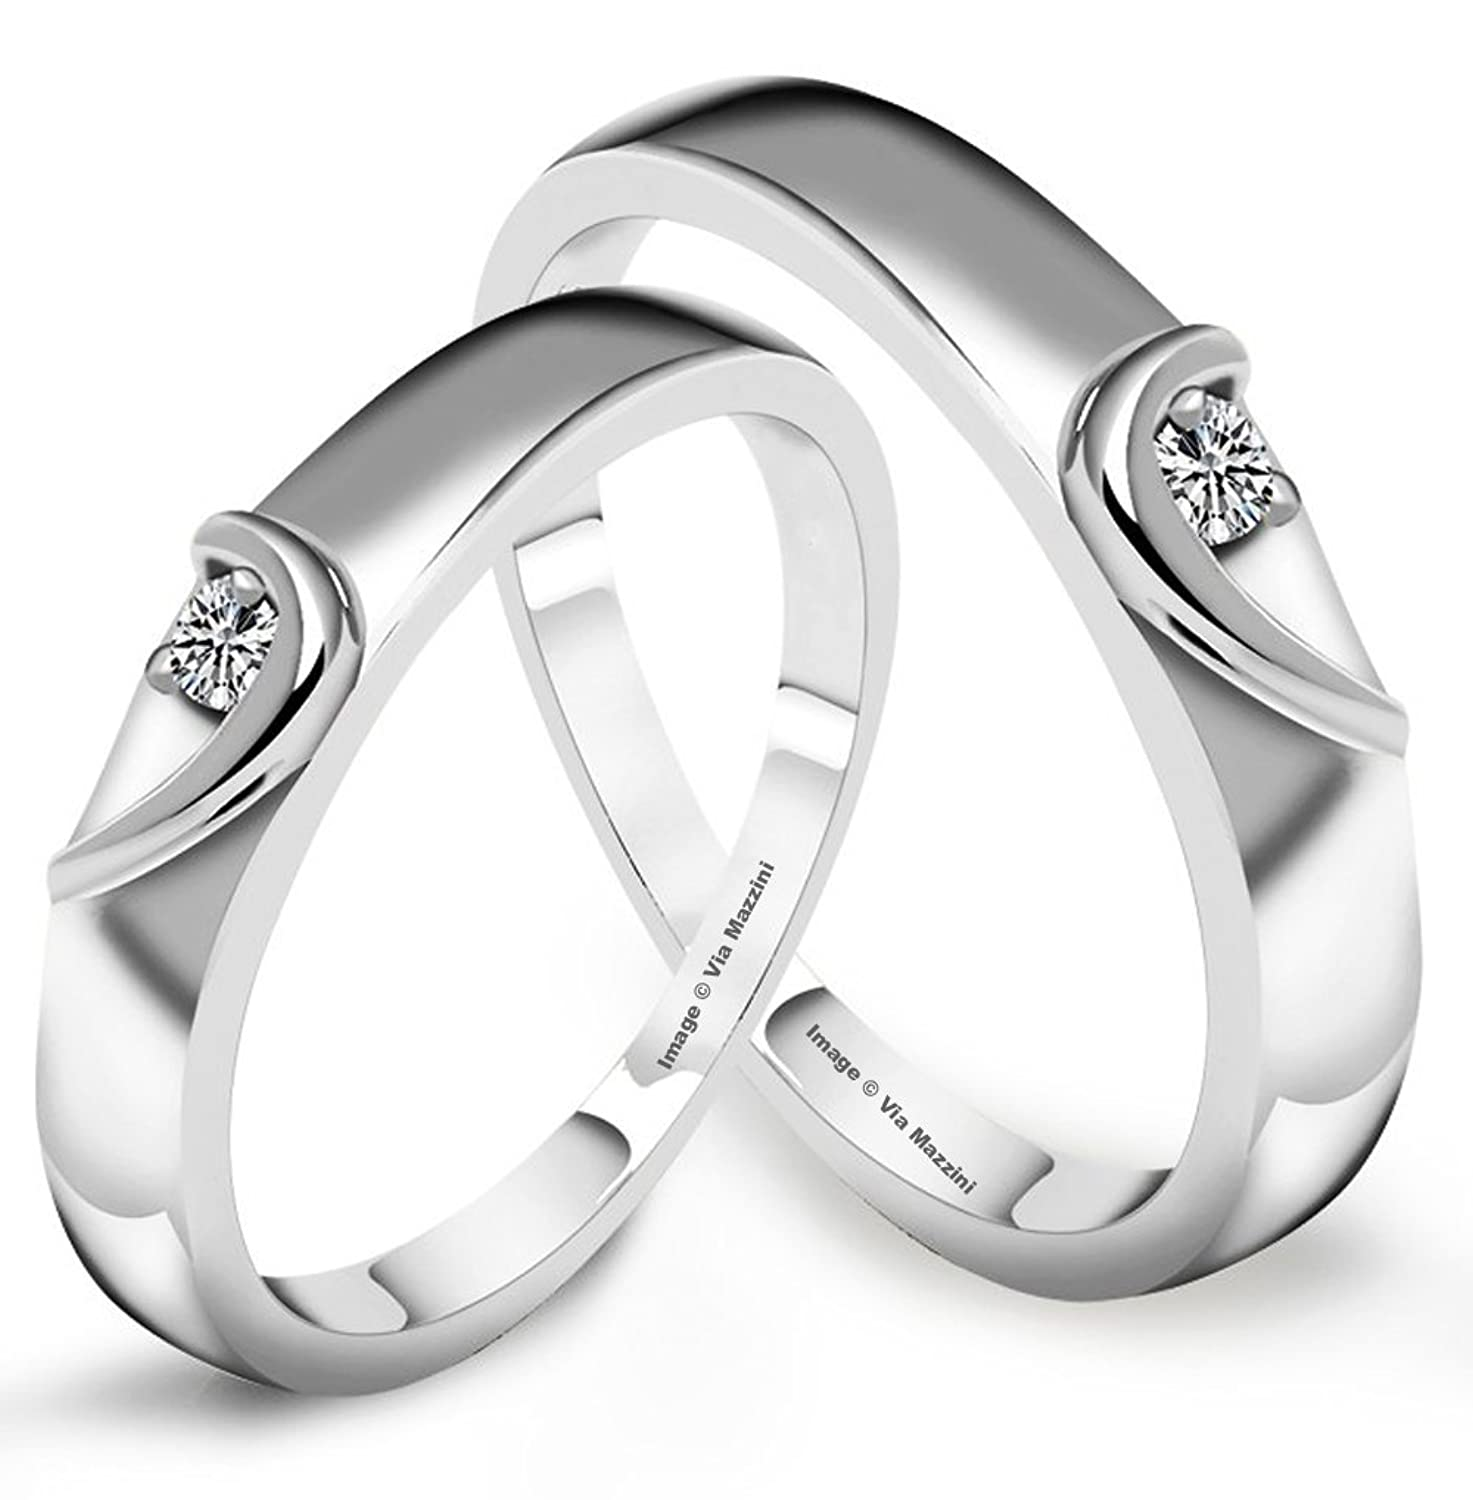 matthews wedding rings specifically have design for tracy stacey favorite it my engagement much and came to by help because them they be us so volume couple connected special stacy bands made seemed hands more me christopher